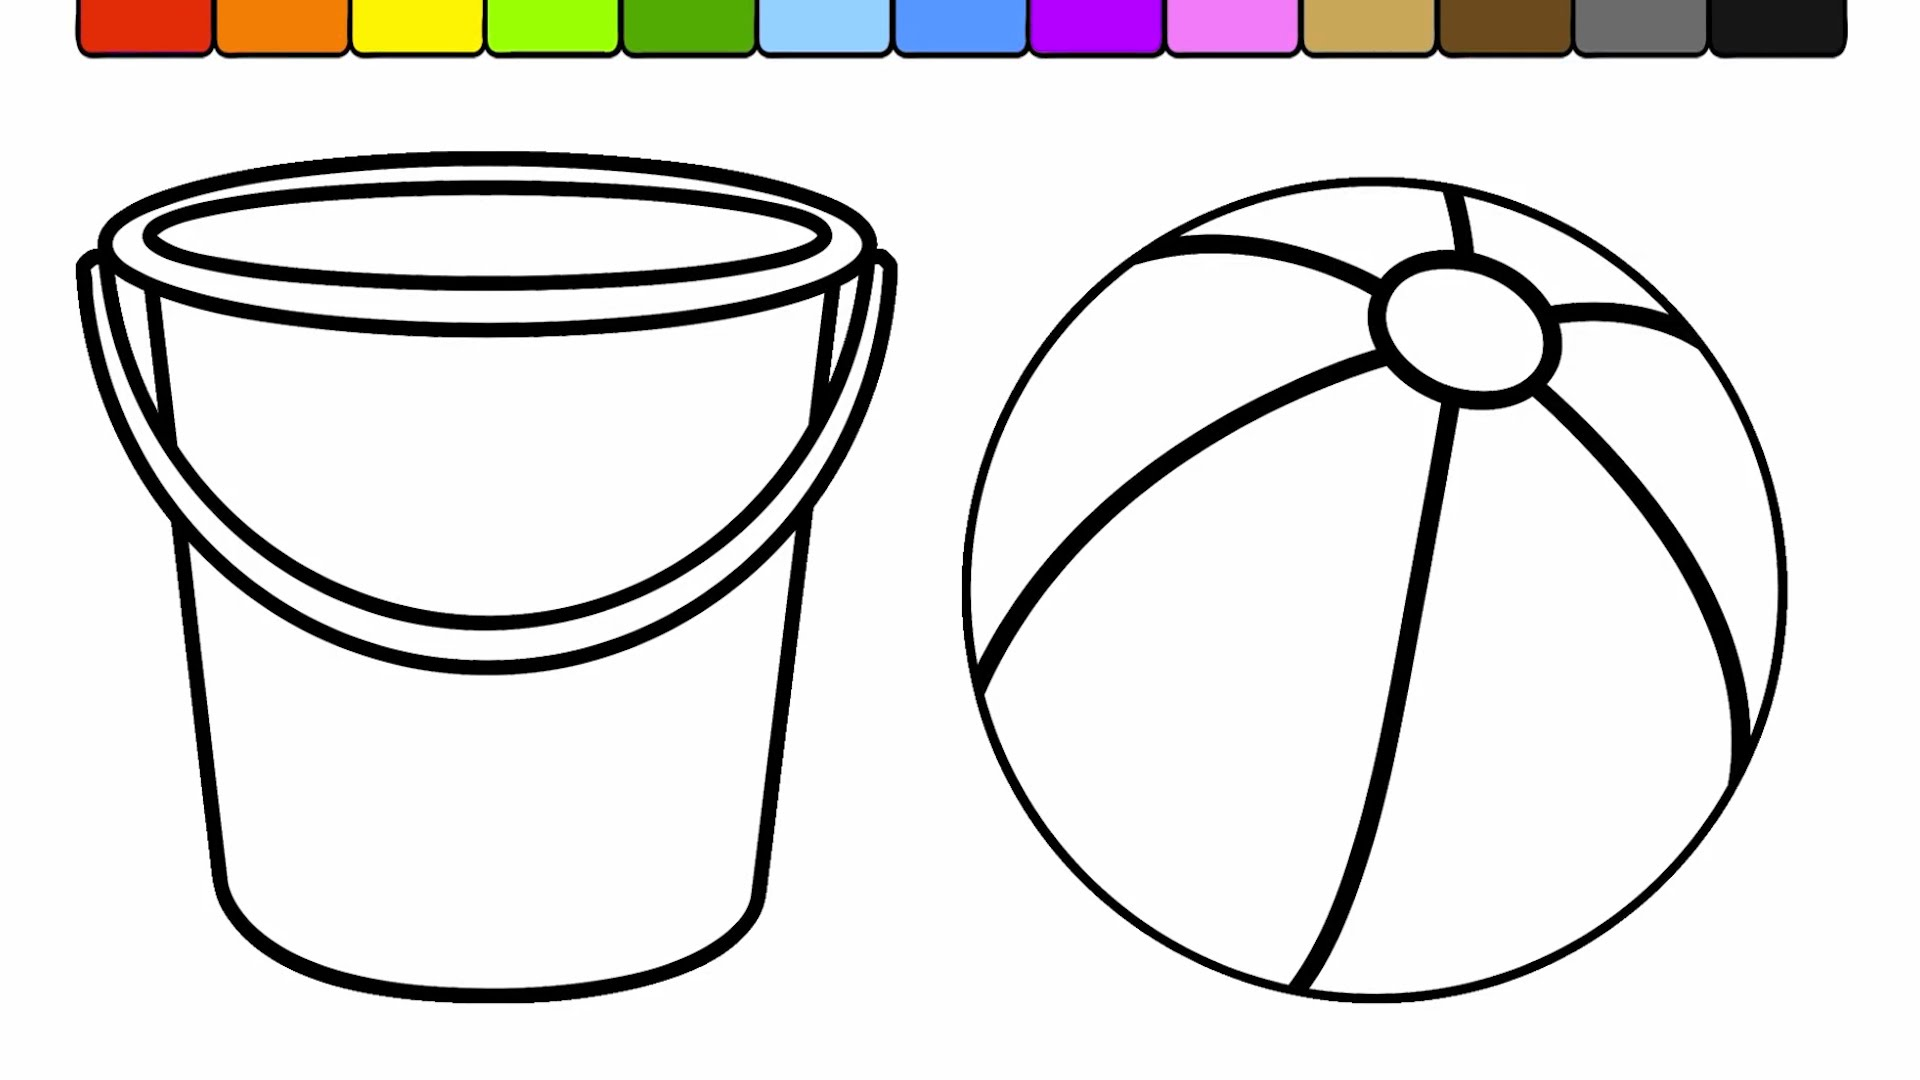 B is for Beach ball coloring pages printable | Beach coloring ... | 1080x1920